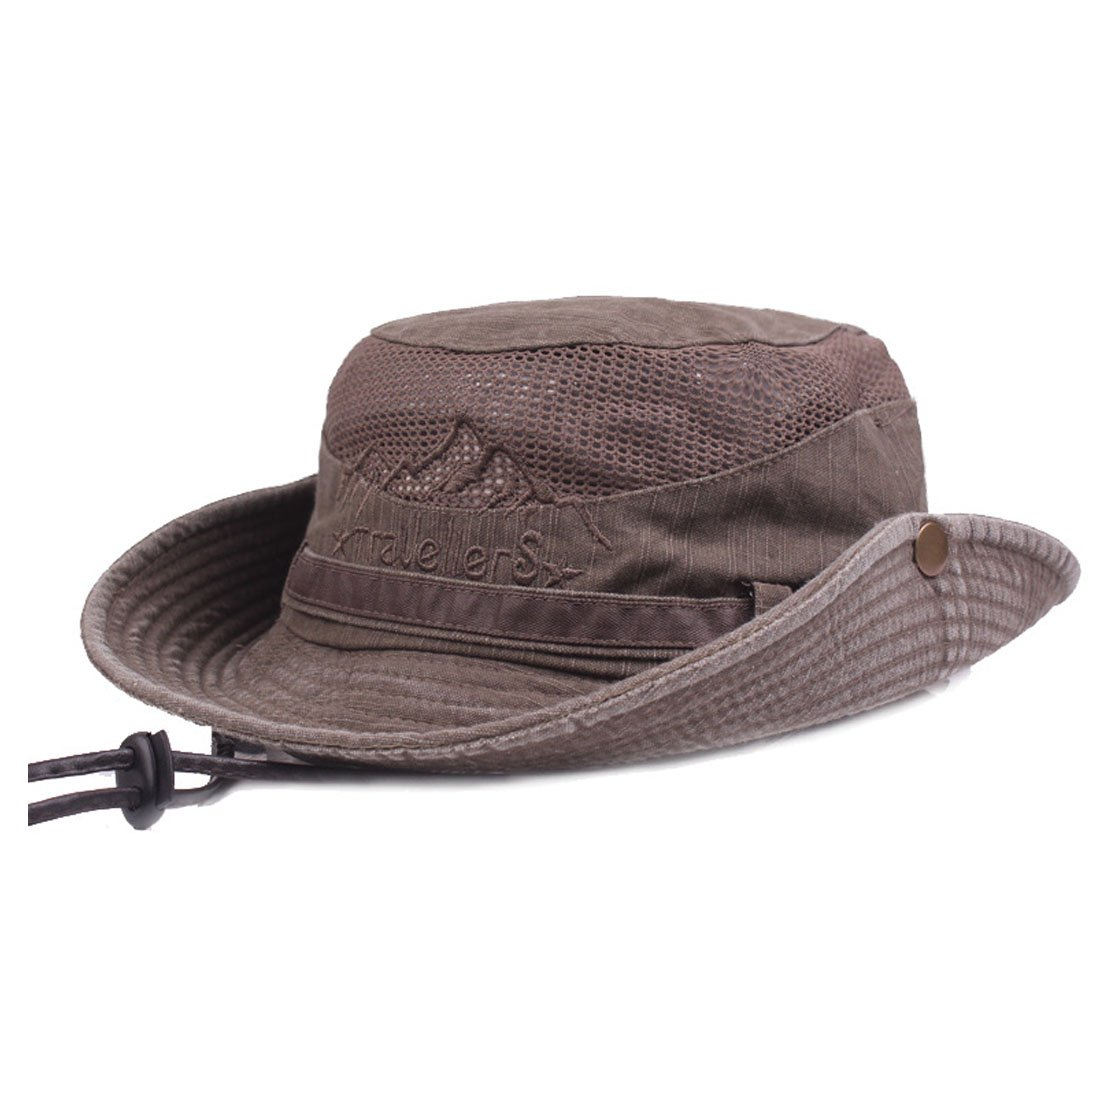 54c57dc06 King Star Men Summer Cotton Cowboy Sun Hat Wide Brim Bucket Fishing Hats  H614242-1